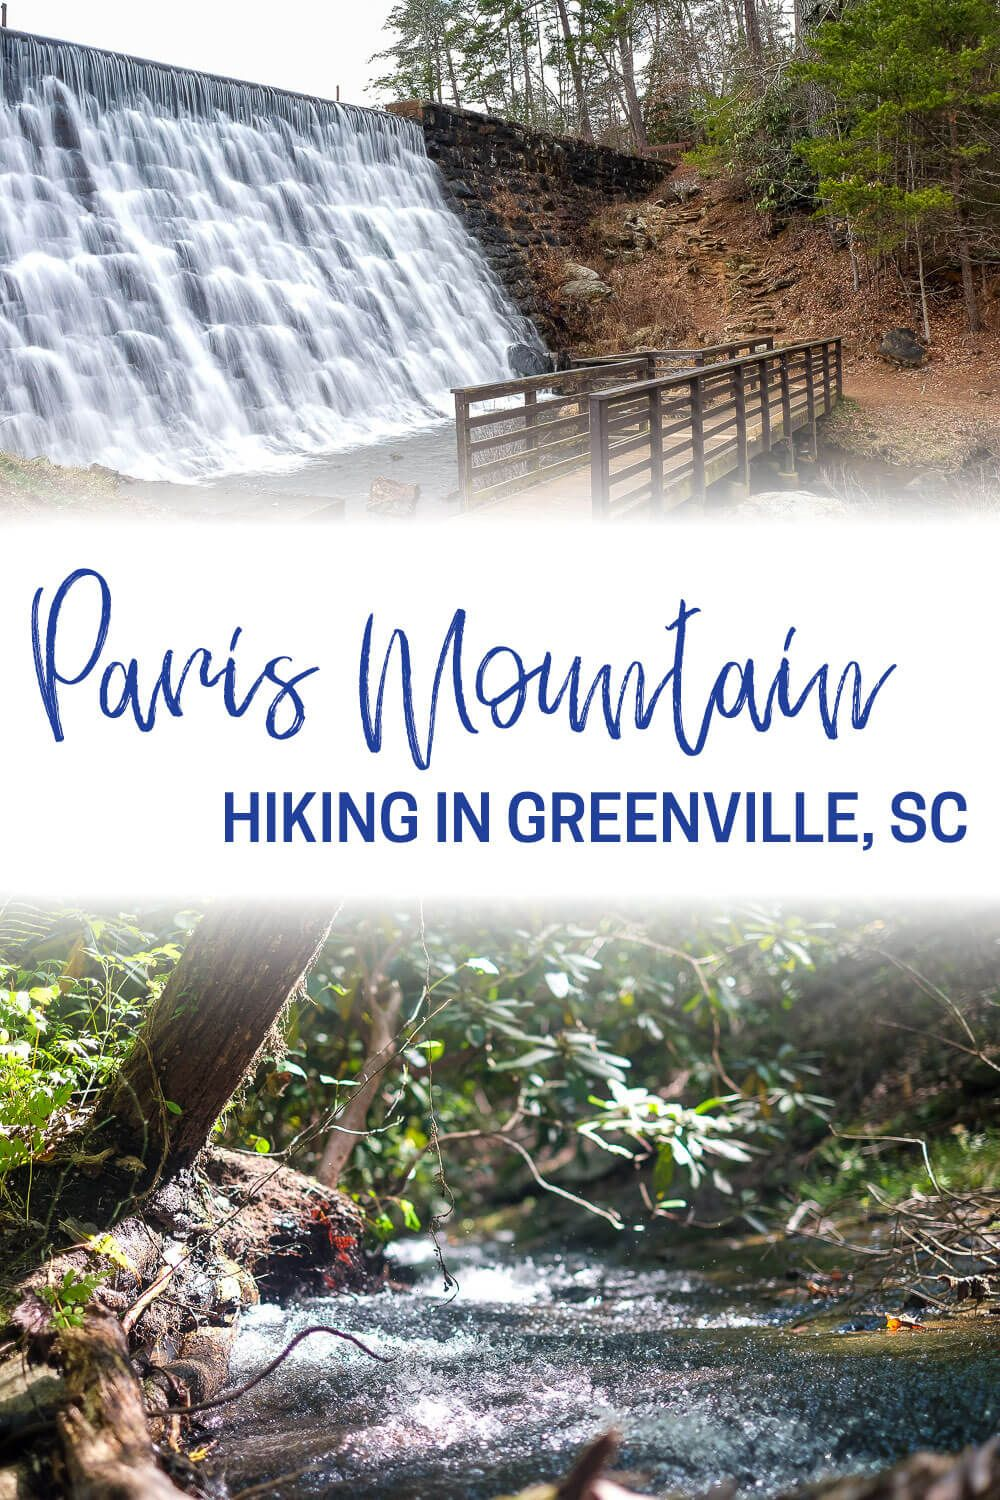 Paris Mountain State Park is Greenville, SC's closest go-to hiking destination. Find out which trails you should explore on your next trip to this state park! This is one of my top things to do in Greenville on a weekend anytime of year. Some of these trails are hiking only, but others are open to mountain bikers as well!